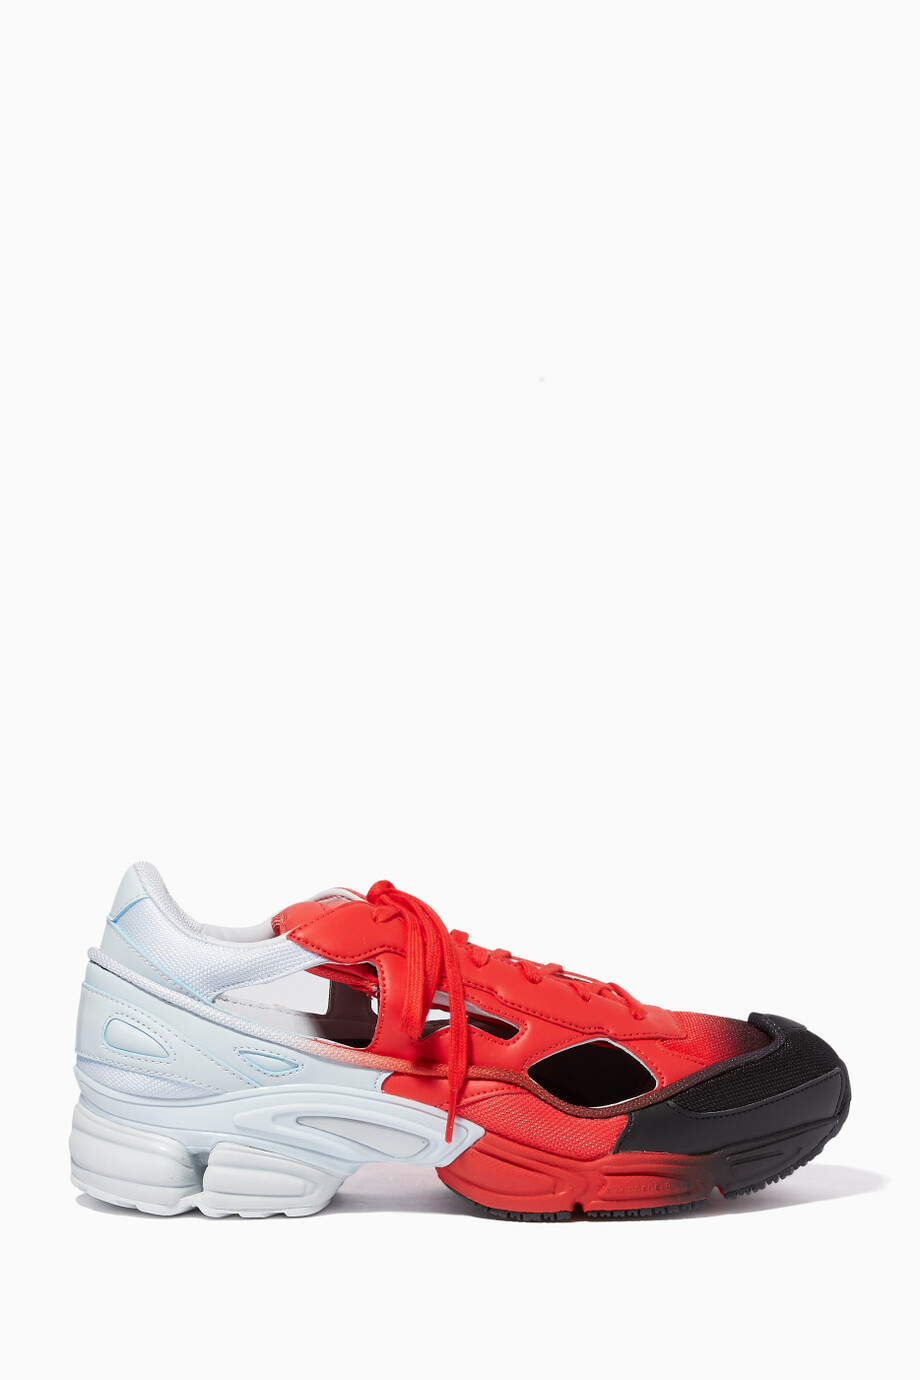 For Red Raf Simons Sneakers X Men Ozweego Adidas Shop Rs Replicant mNn8v0w